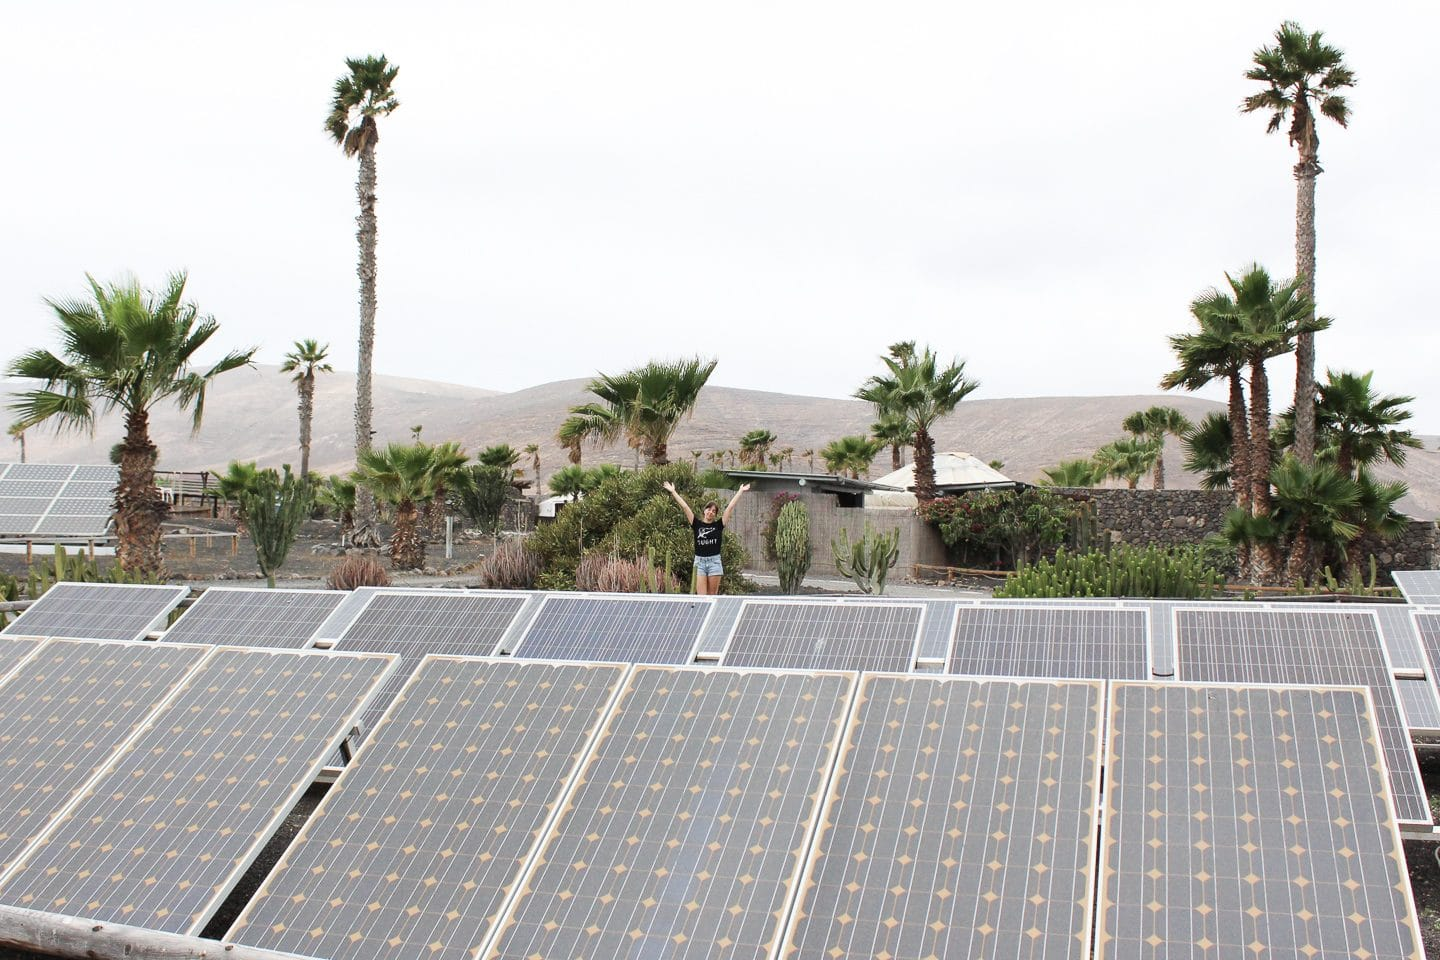 Besma stands behind solar panels, with palm trees in the background